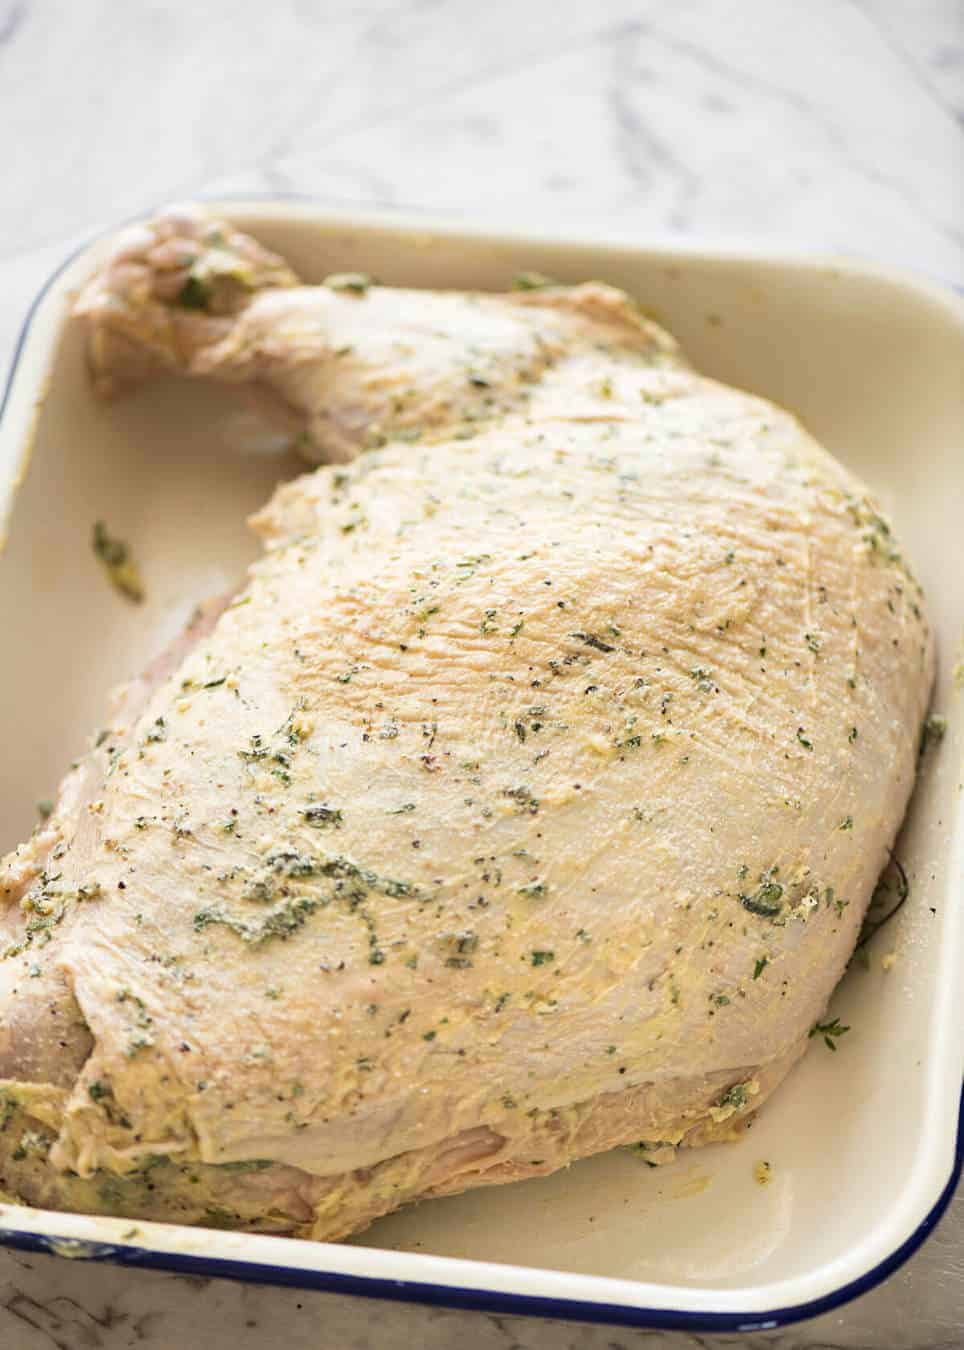 How to make turkey with herb butter under the skin (quick video tutorial provided) www.recipetineats.com